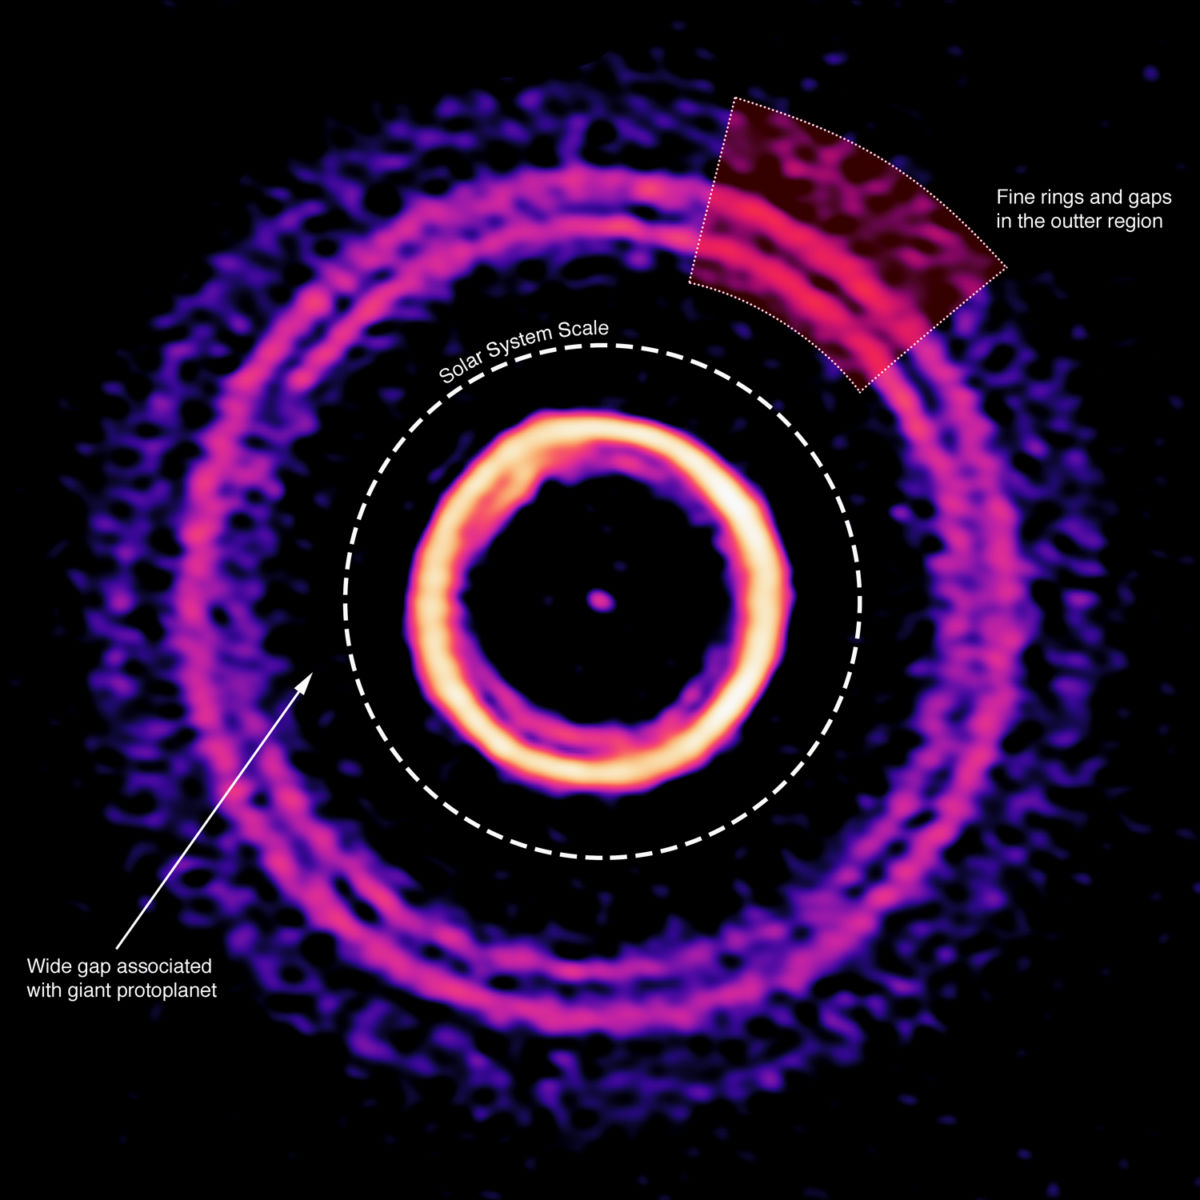 The inward migration of a recently formed exoplanet is causing never-before-seen structures to form in its host star's protoplanetary disk.